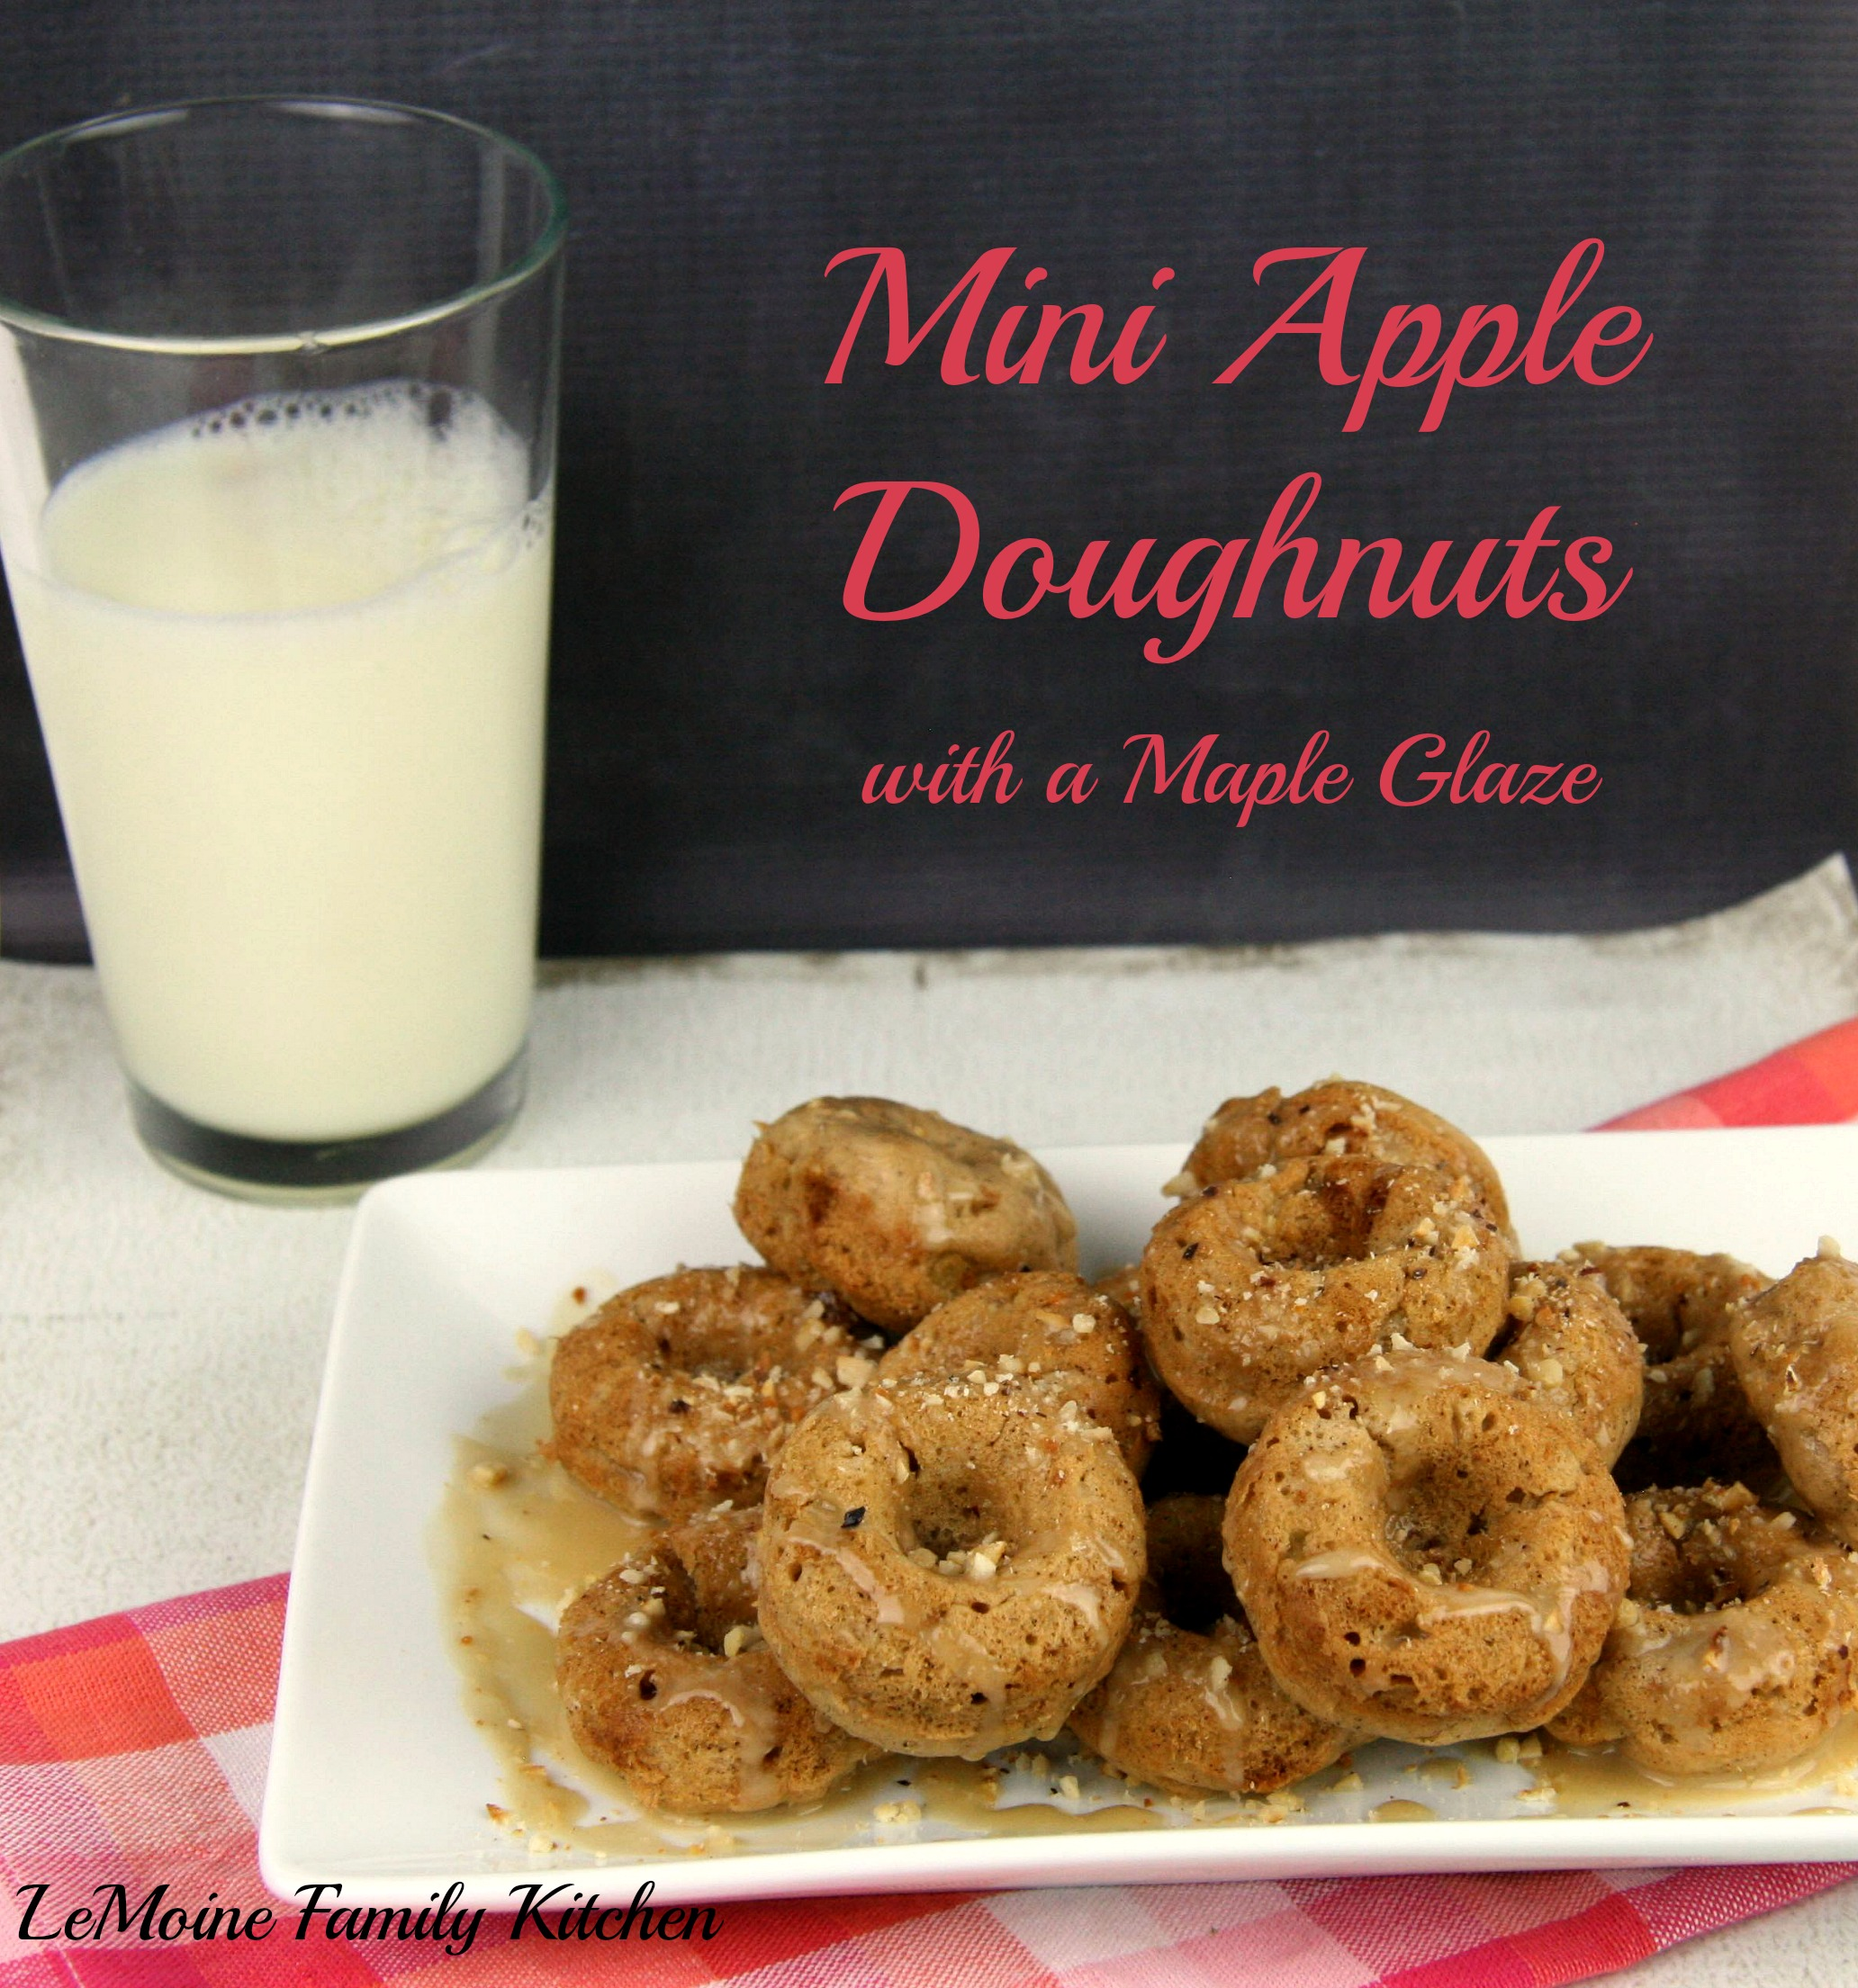 Mini Apple Doughnuts with a Maple Glaze | LeMoine Family Kitchen #apple #recipe #doughnut #donut #maple #appledoughnut #homemadedoughnut